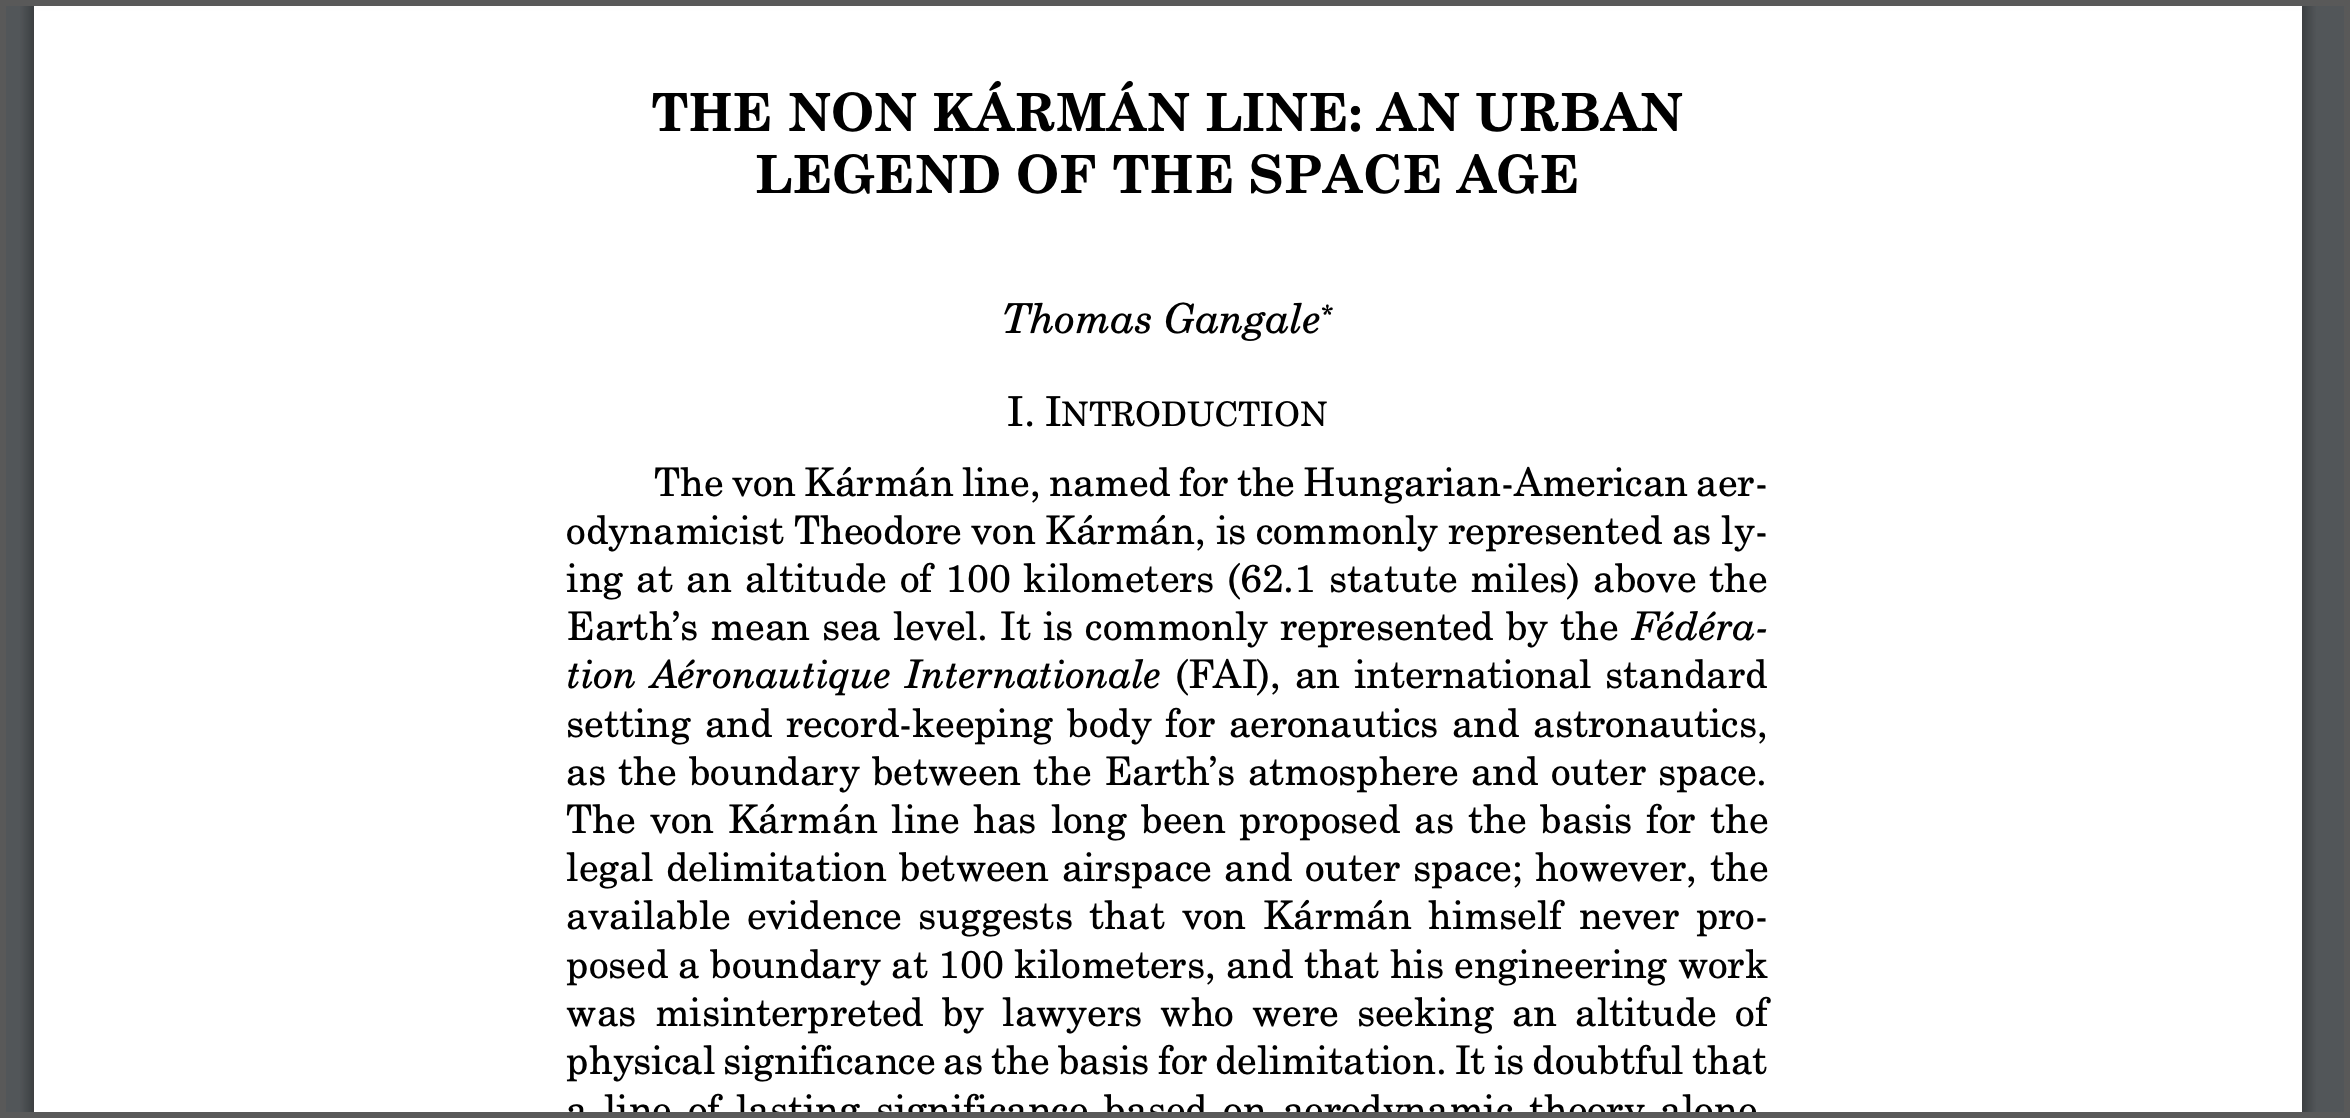 an urban legend of the space age